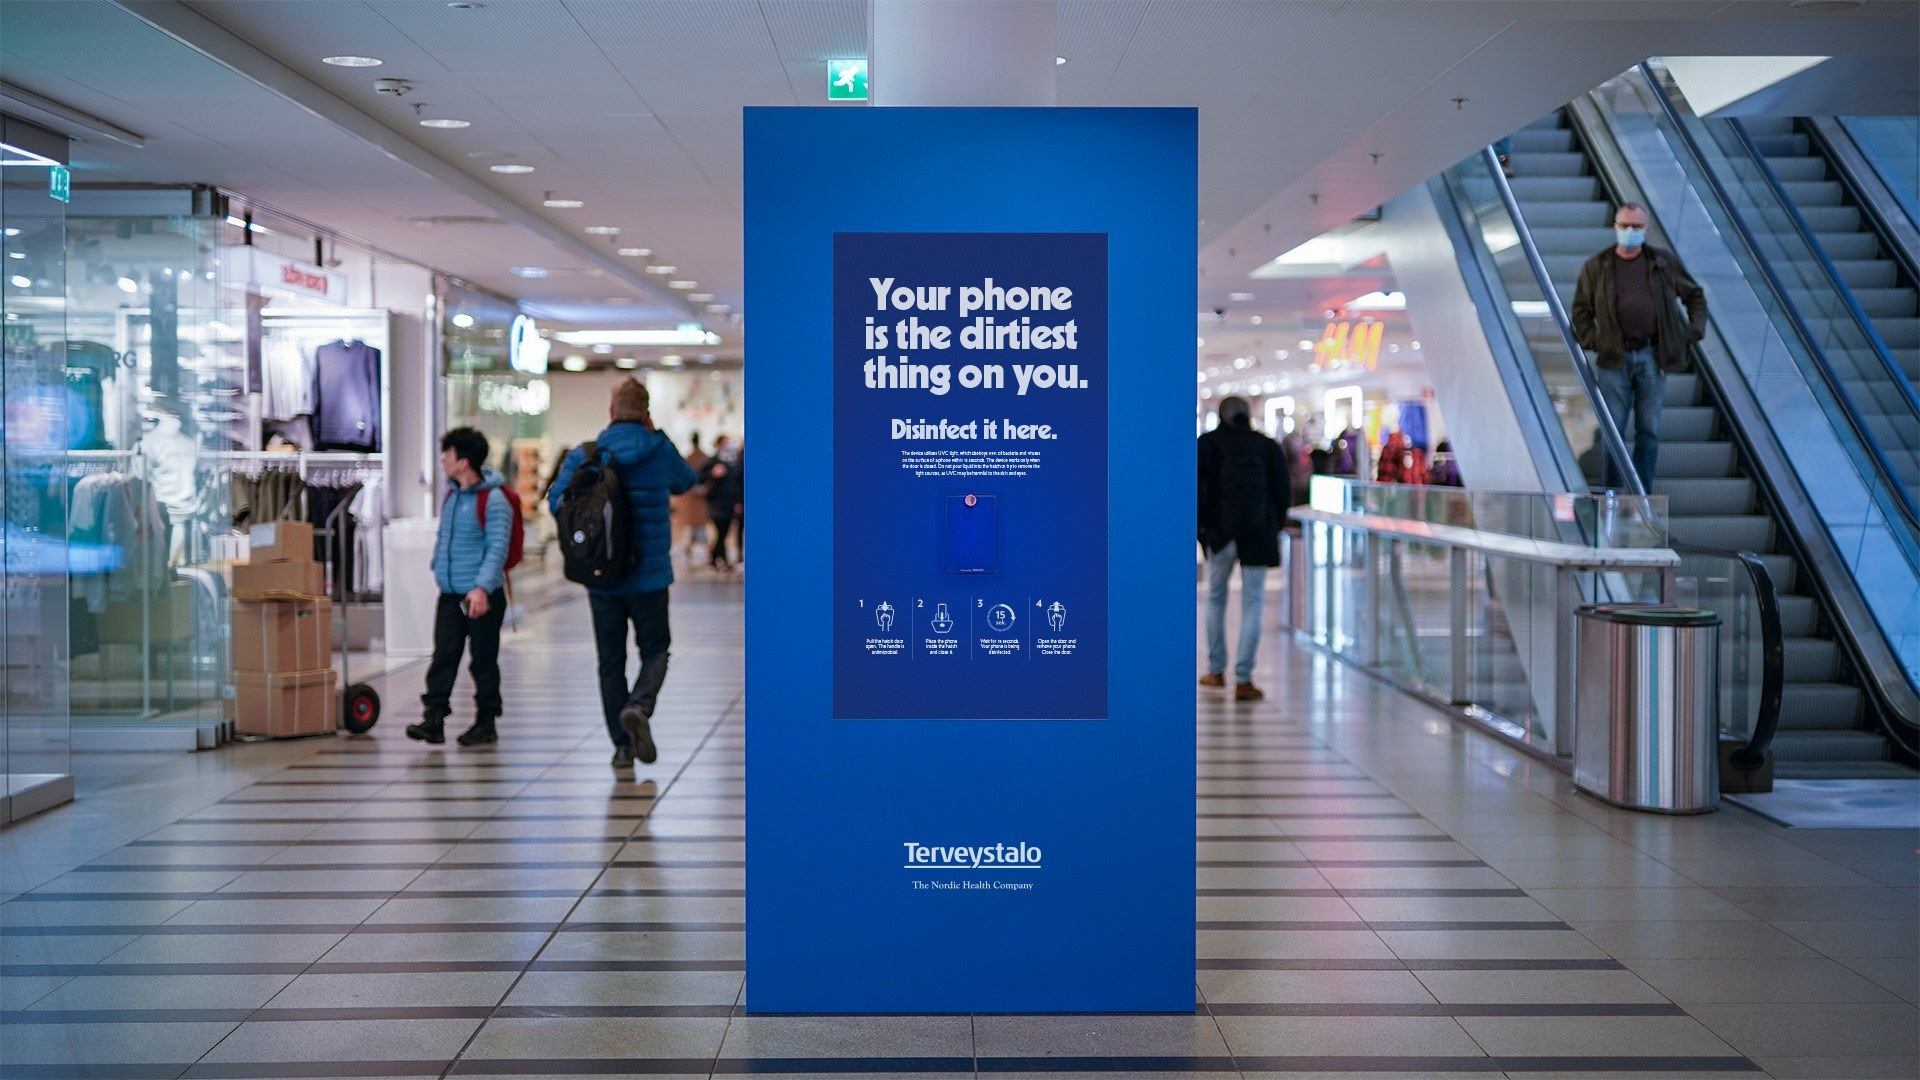 These Billboards Double As Disinfecting Stations For Your Phone